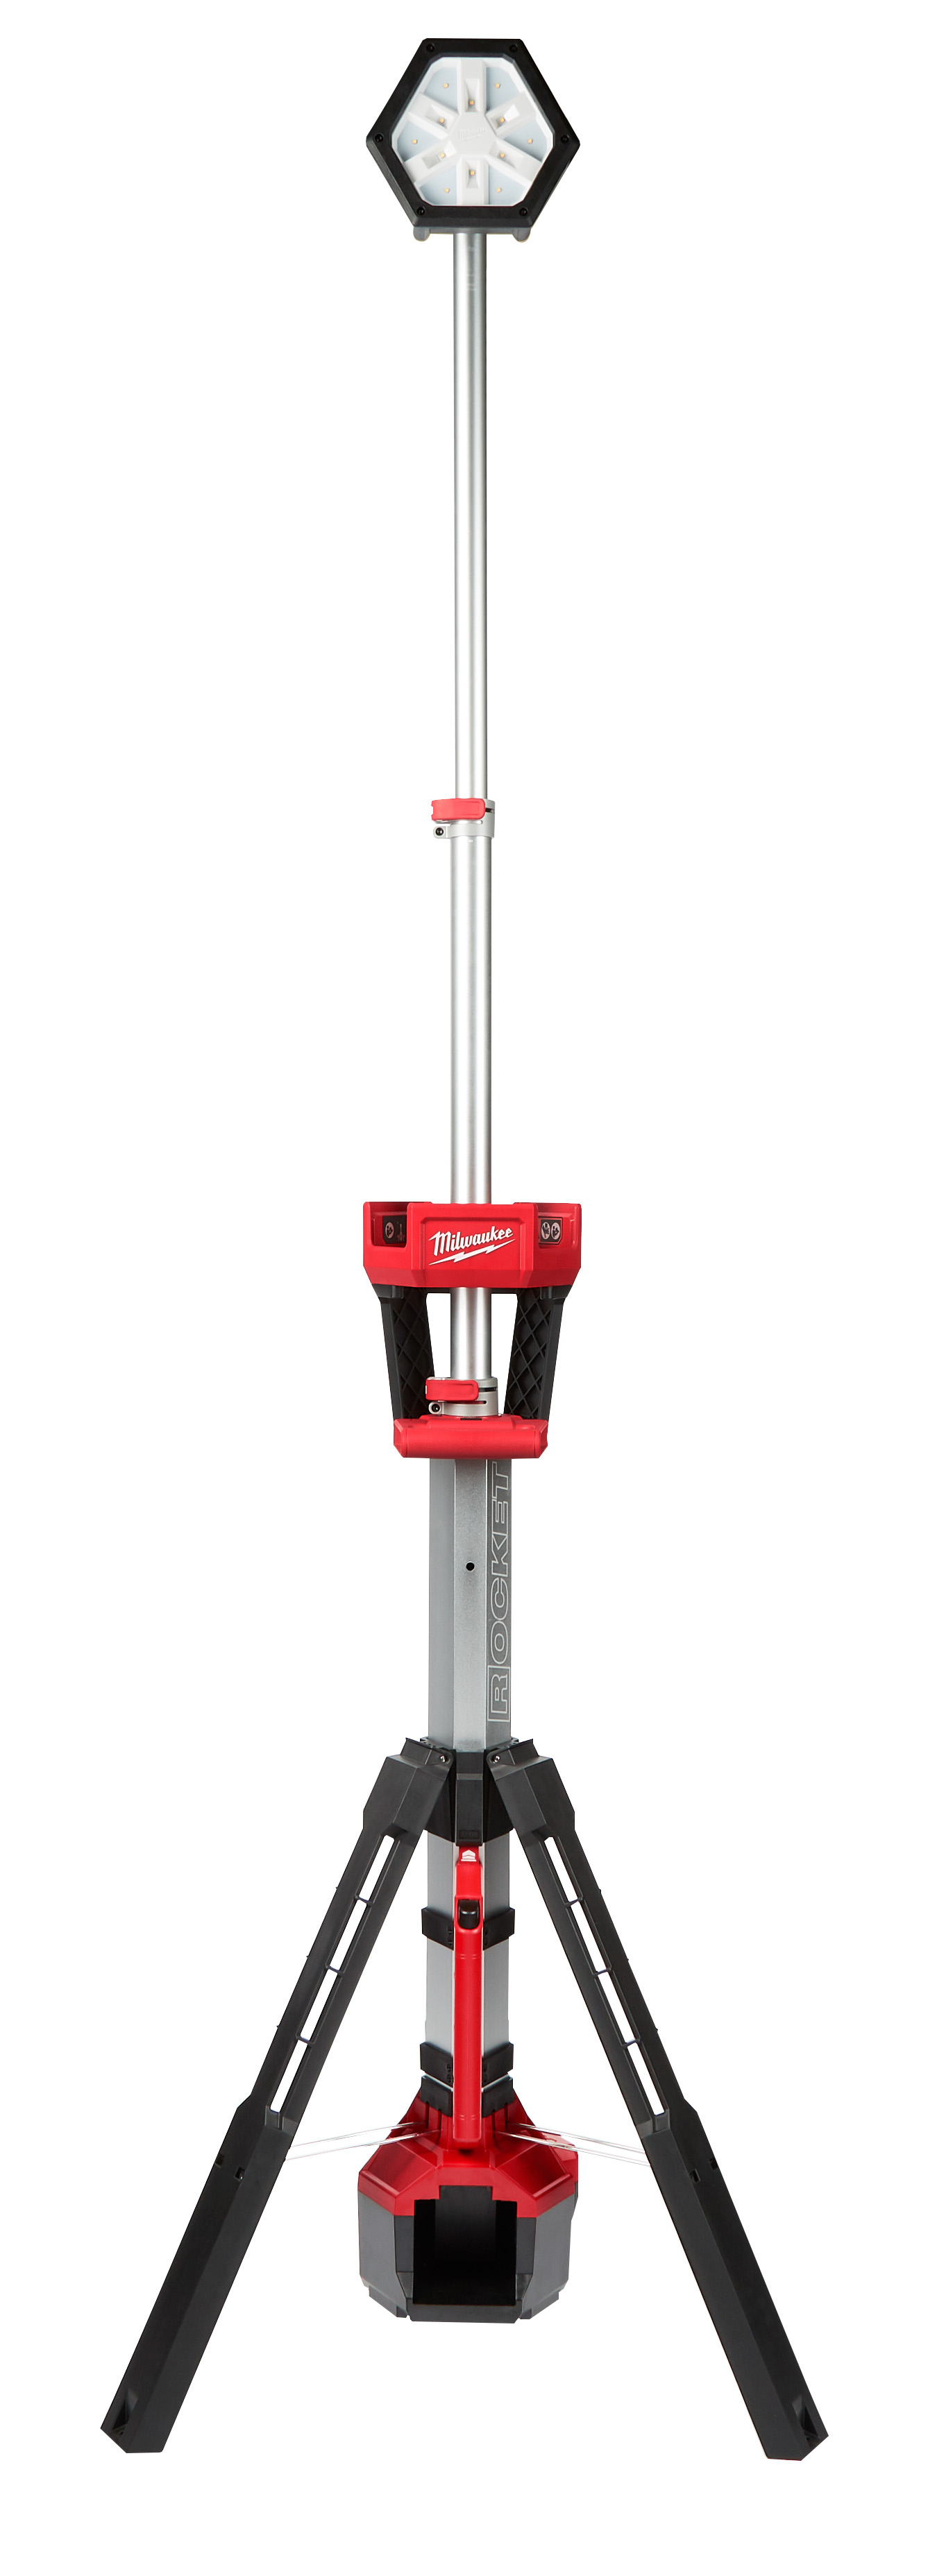 Milwaukee® M18™ 2131-20 Dual Power Cordless Tower Light, 7-1/2 in L x 8 in W x 40-1/2 in H, 18 VDC, LED Lamp